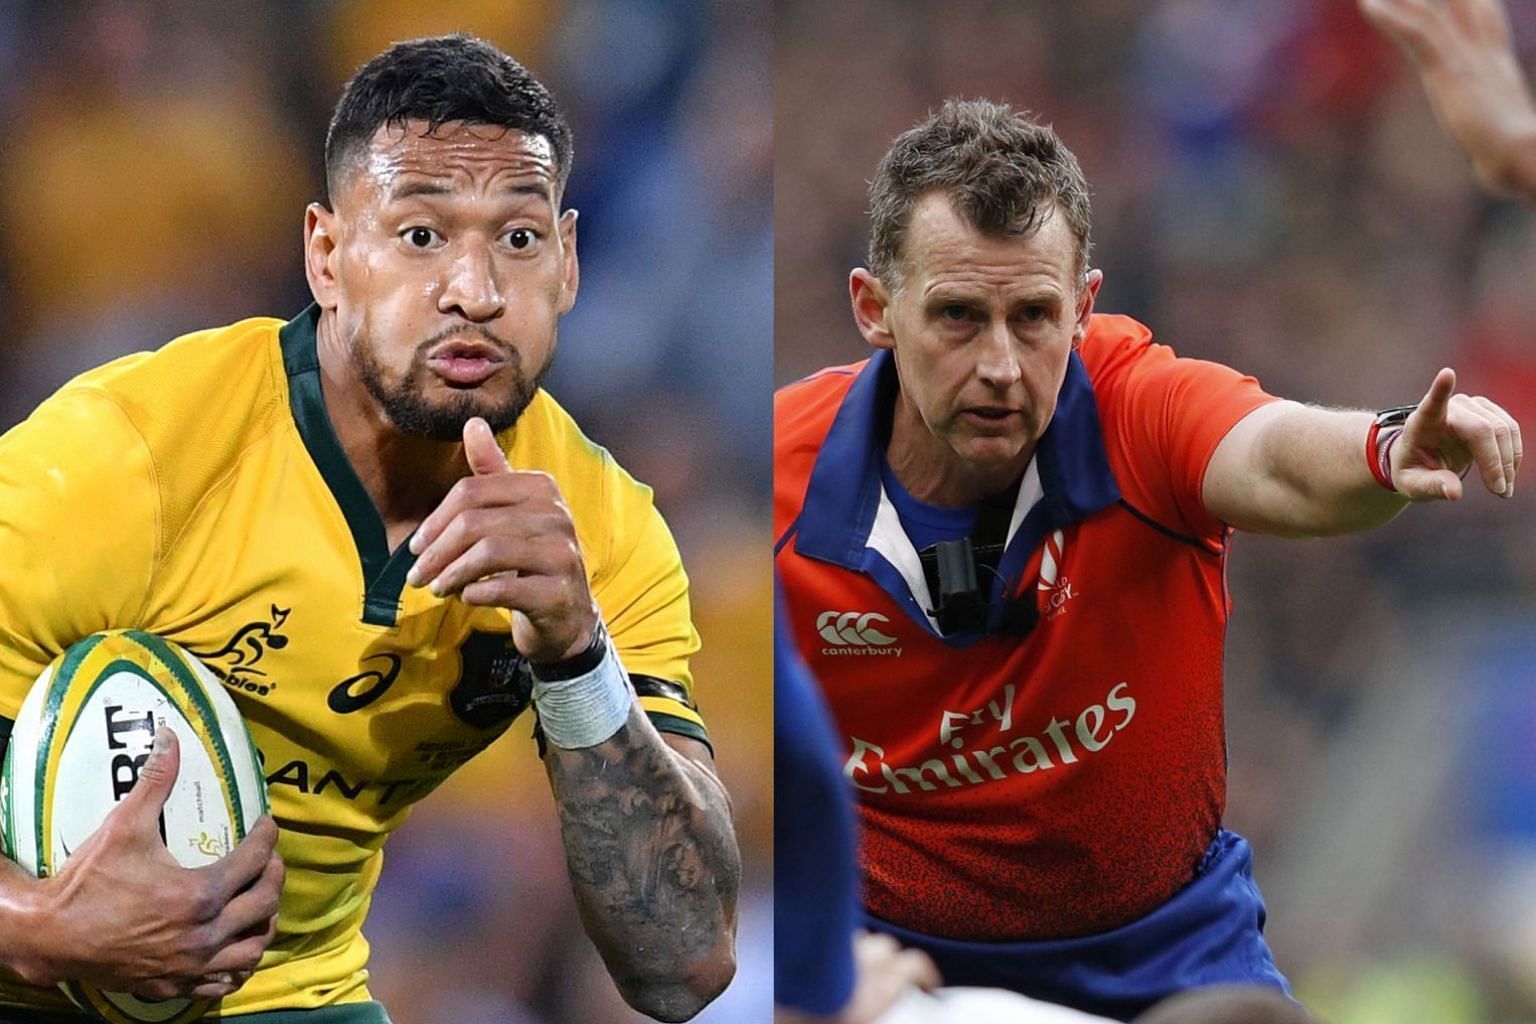 Australian rugby star Israel Folau (left) has been openly espousing his conservative and bigoted views. Welsh referee Nigel Owens (right), in contrast, has had to fight his personal battle, being gay.